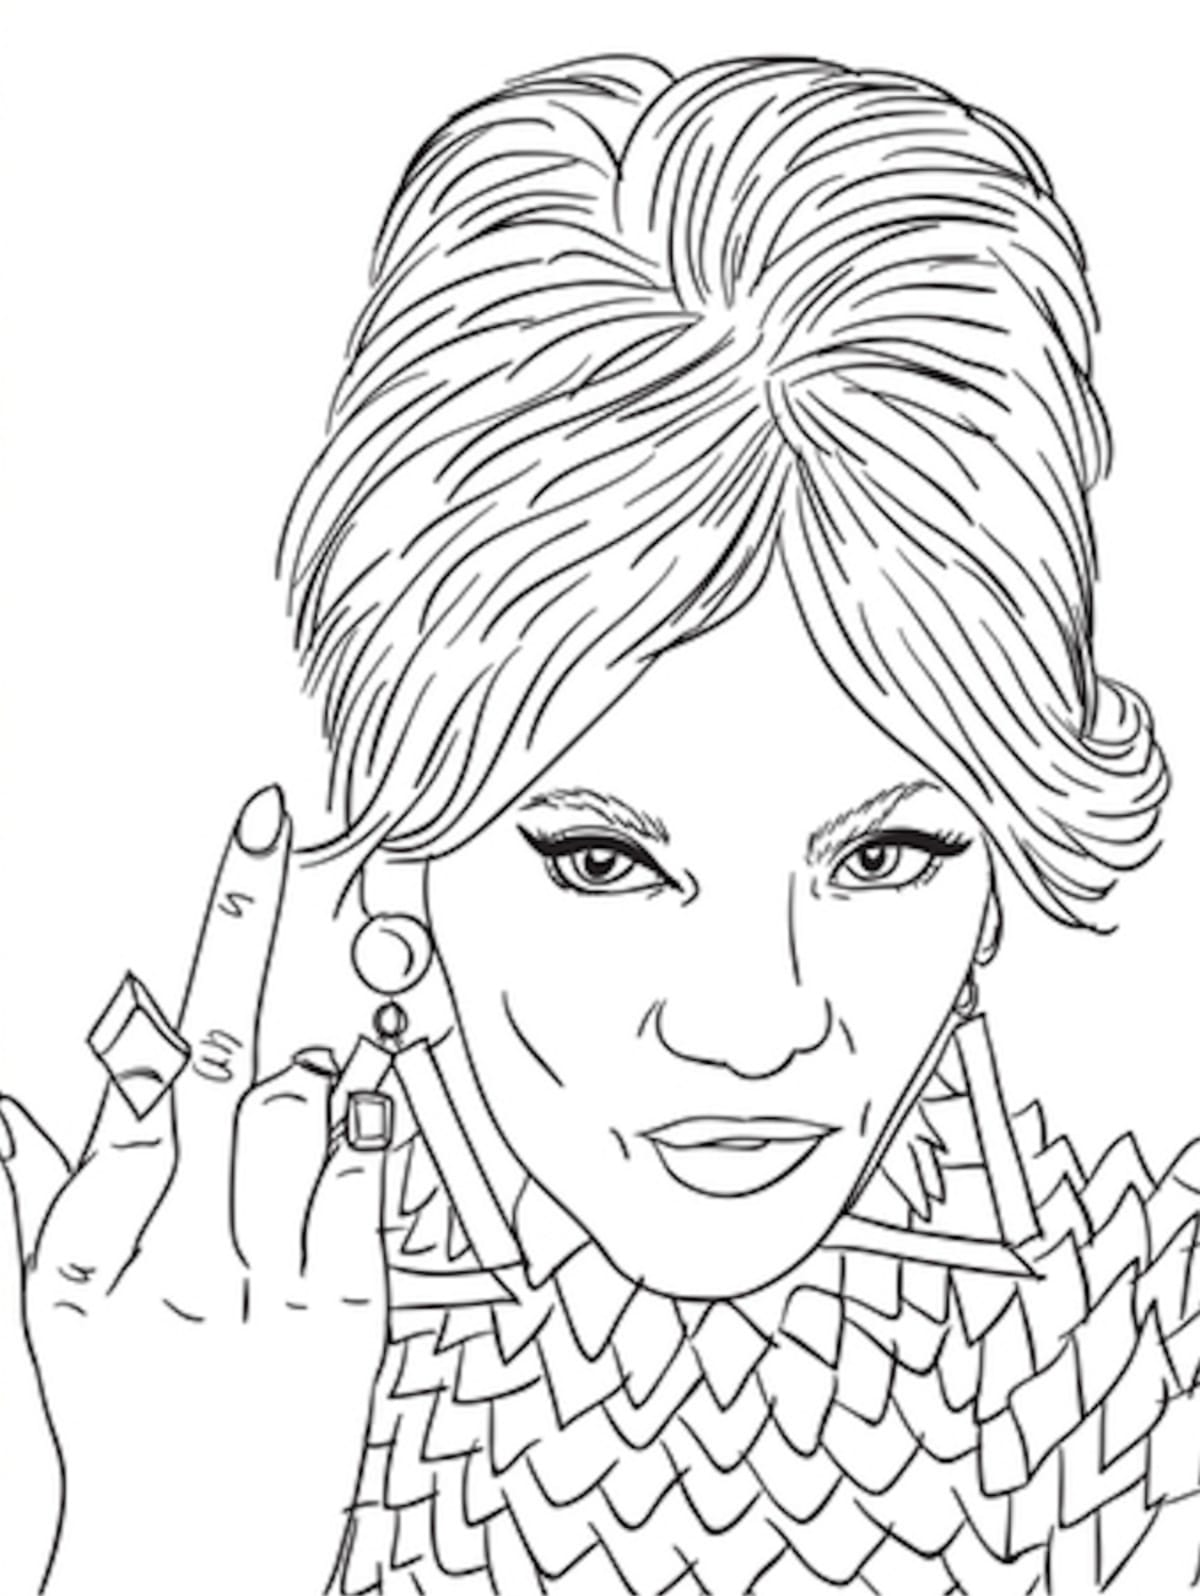 two women coloring page for adults quot evolution of beyonce quot coloring book is the way to 7923